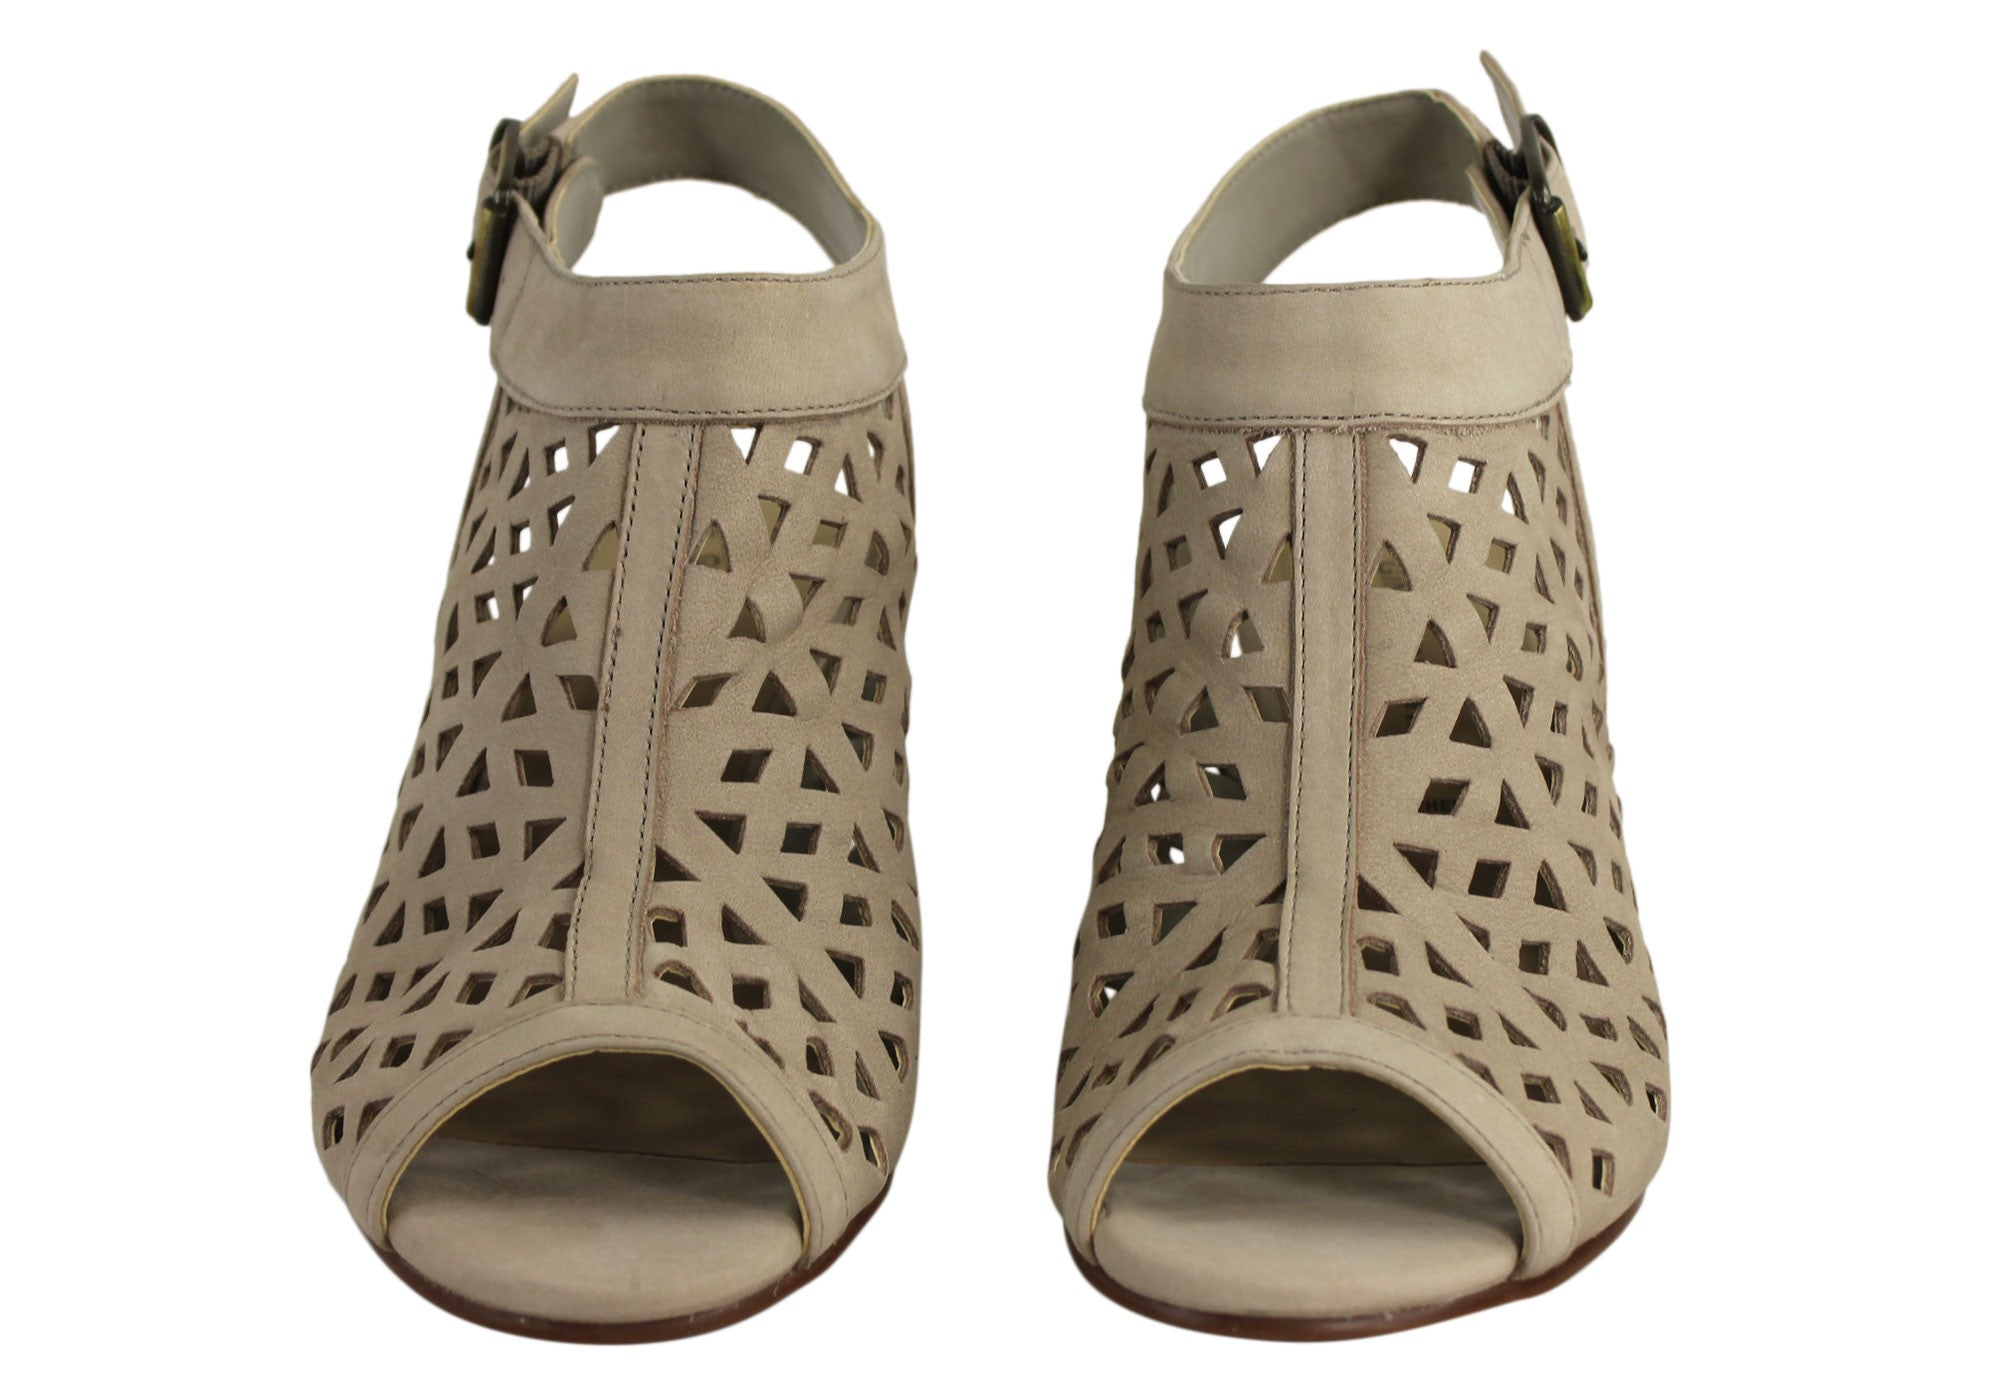 Gino Ventori Fever Womens Mid Heel Sandals Made In Brazil